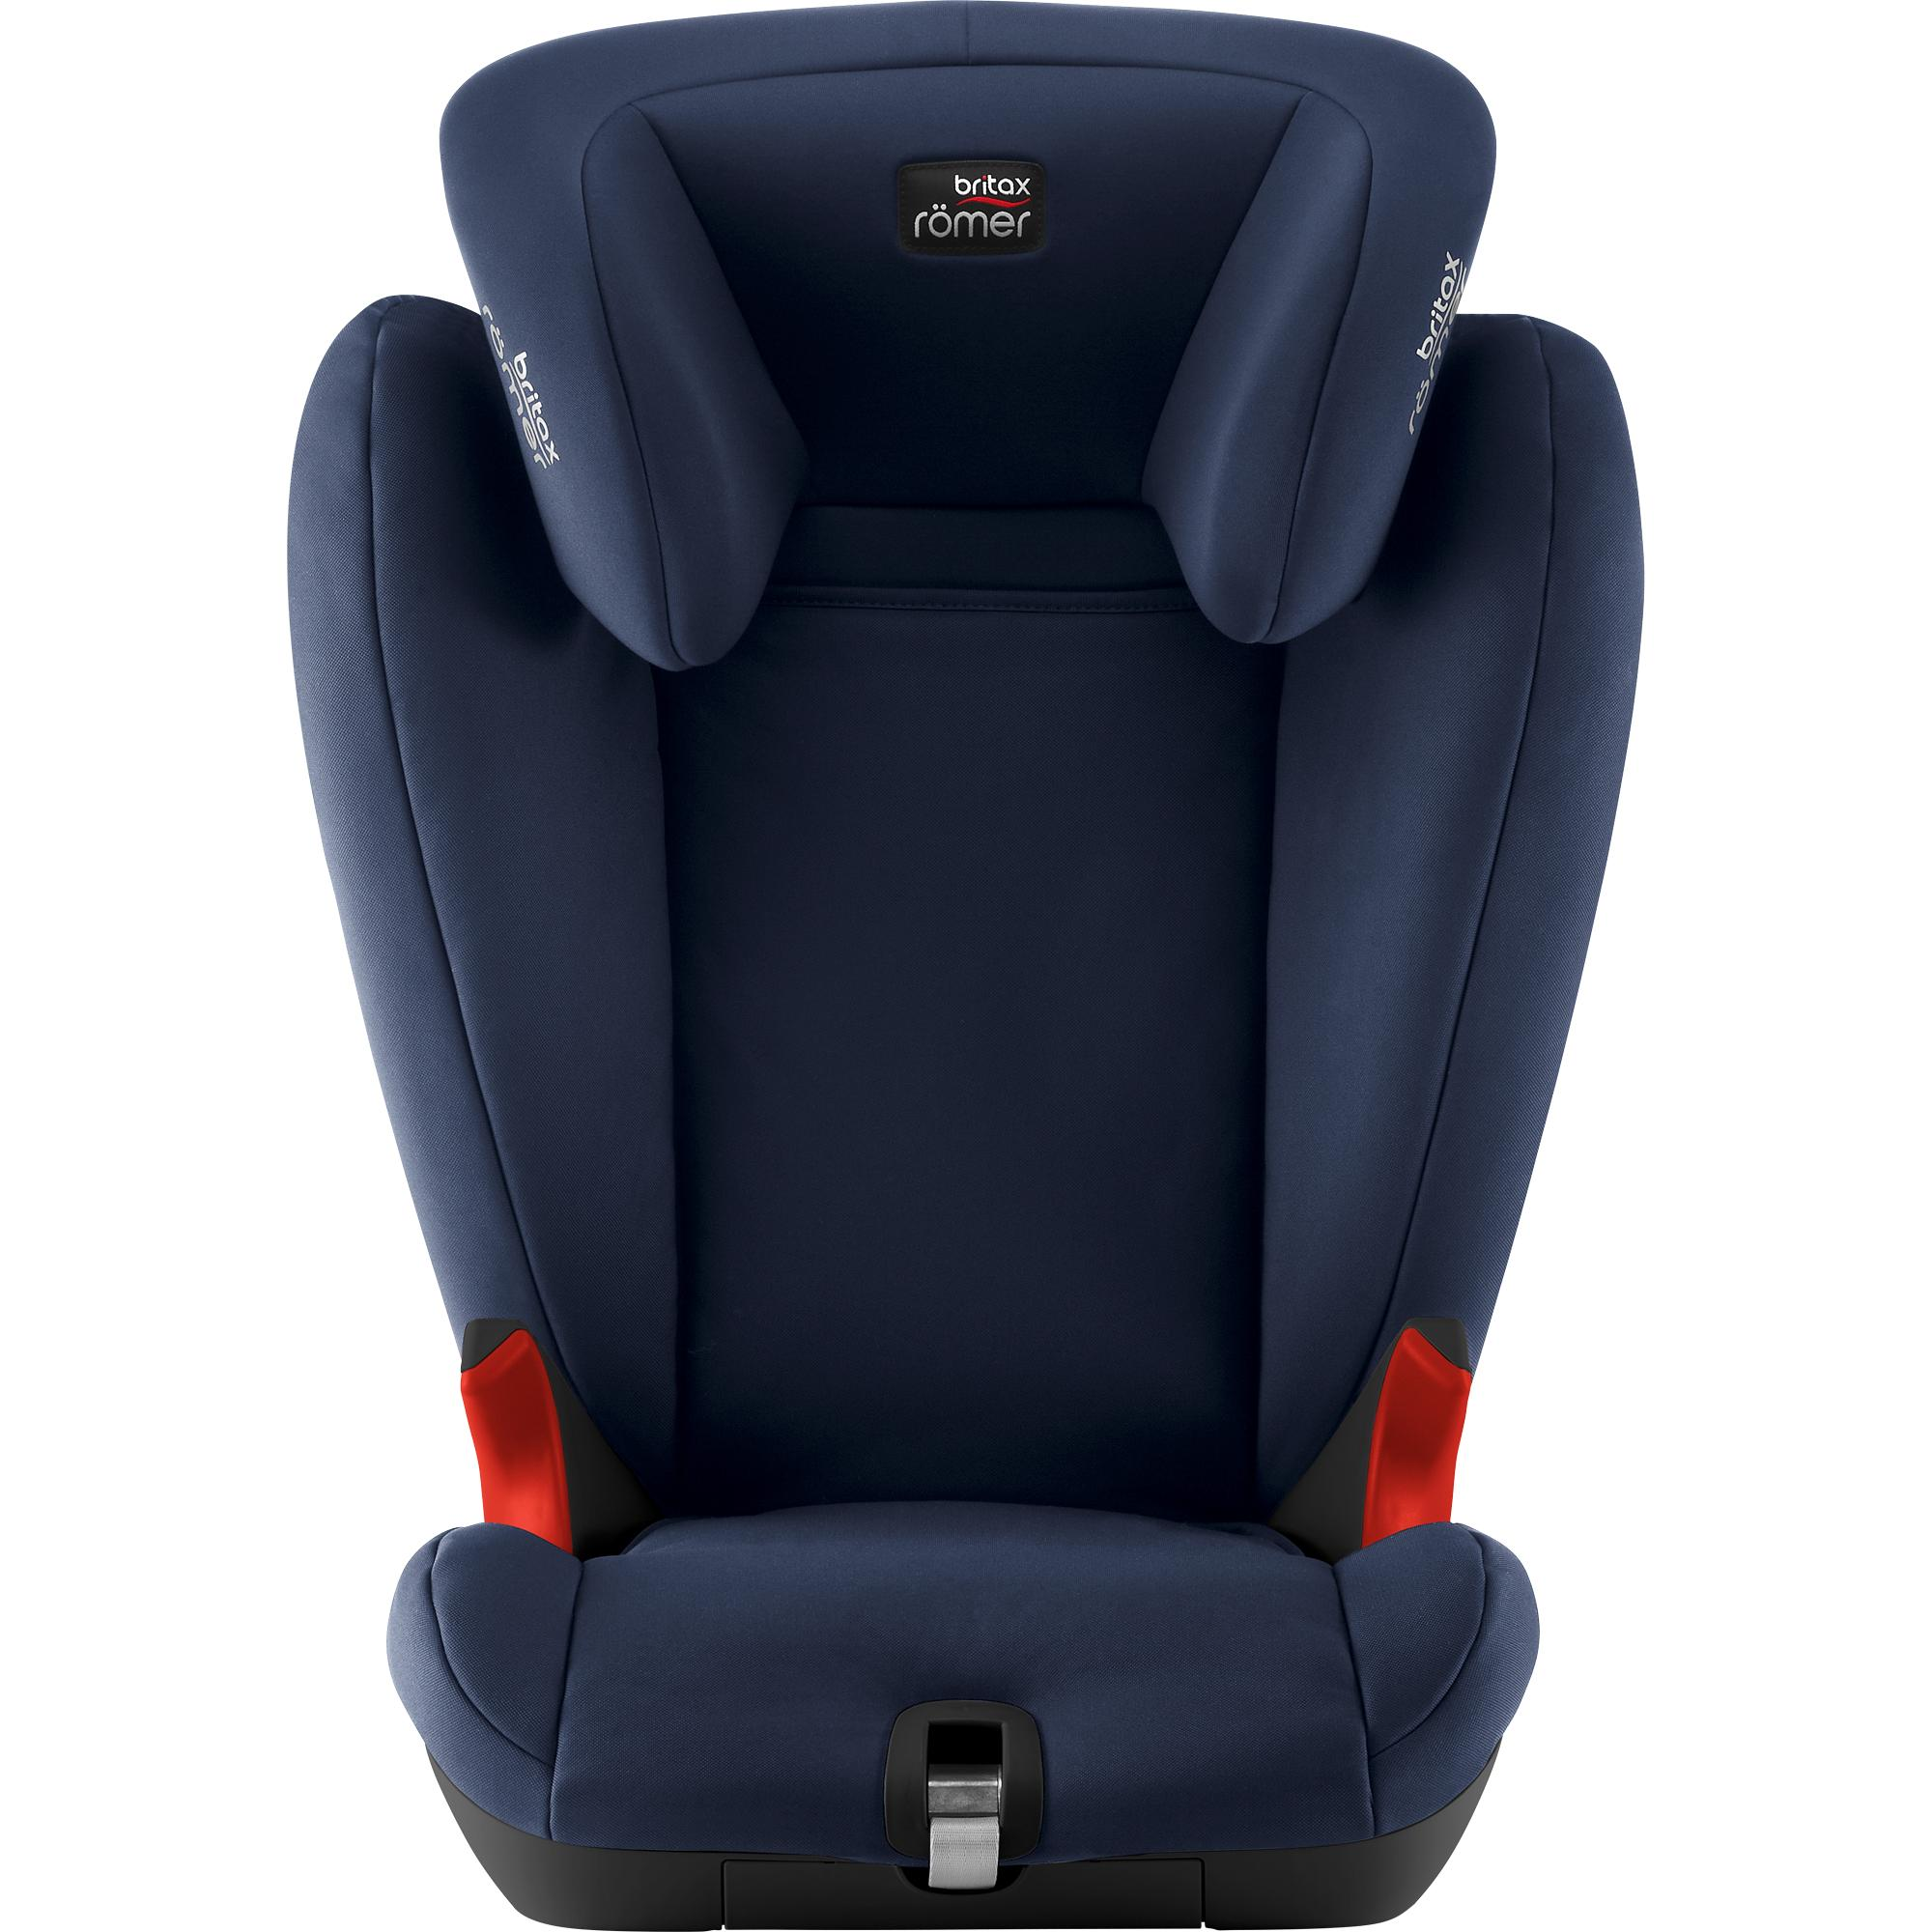 Autosedačka Kidfix SL Black, Moonlight Blue